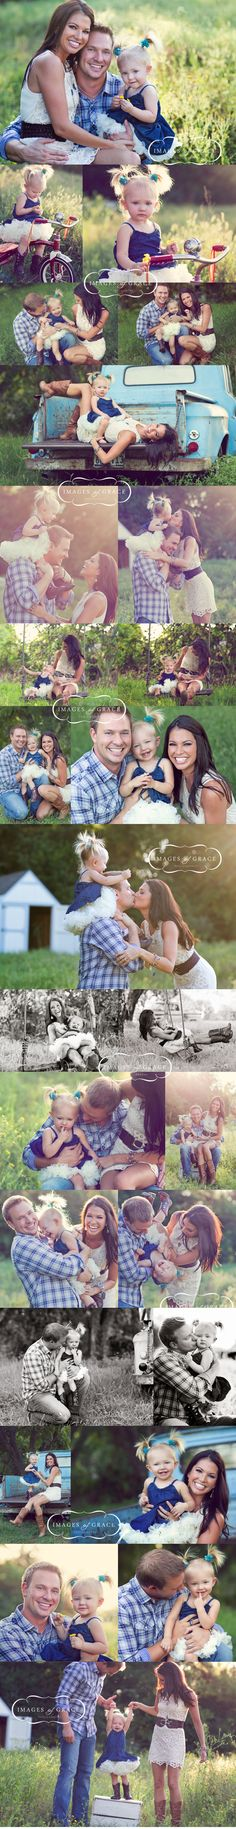 Love this! Such a fun, natural session.